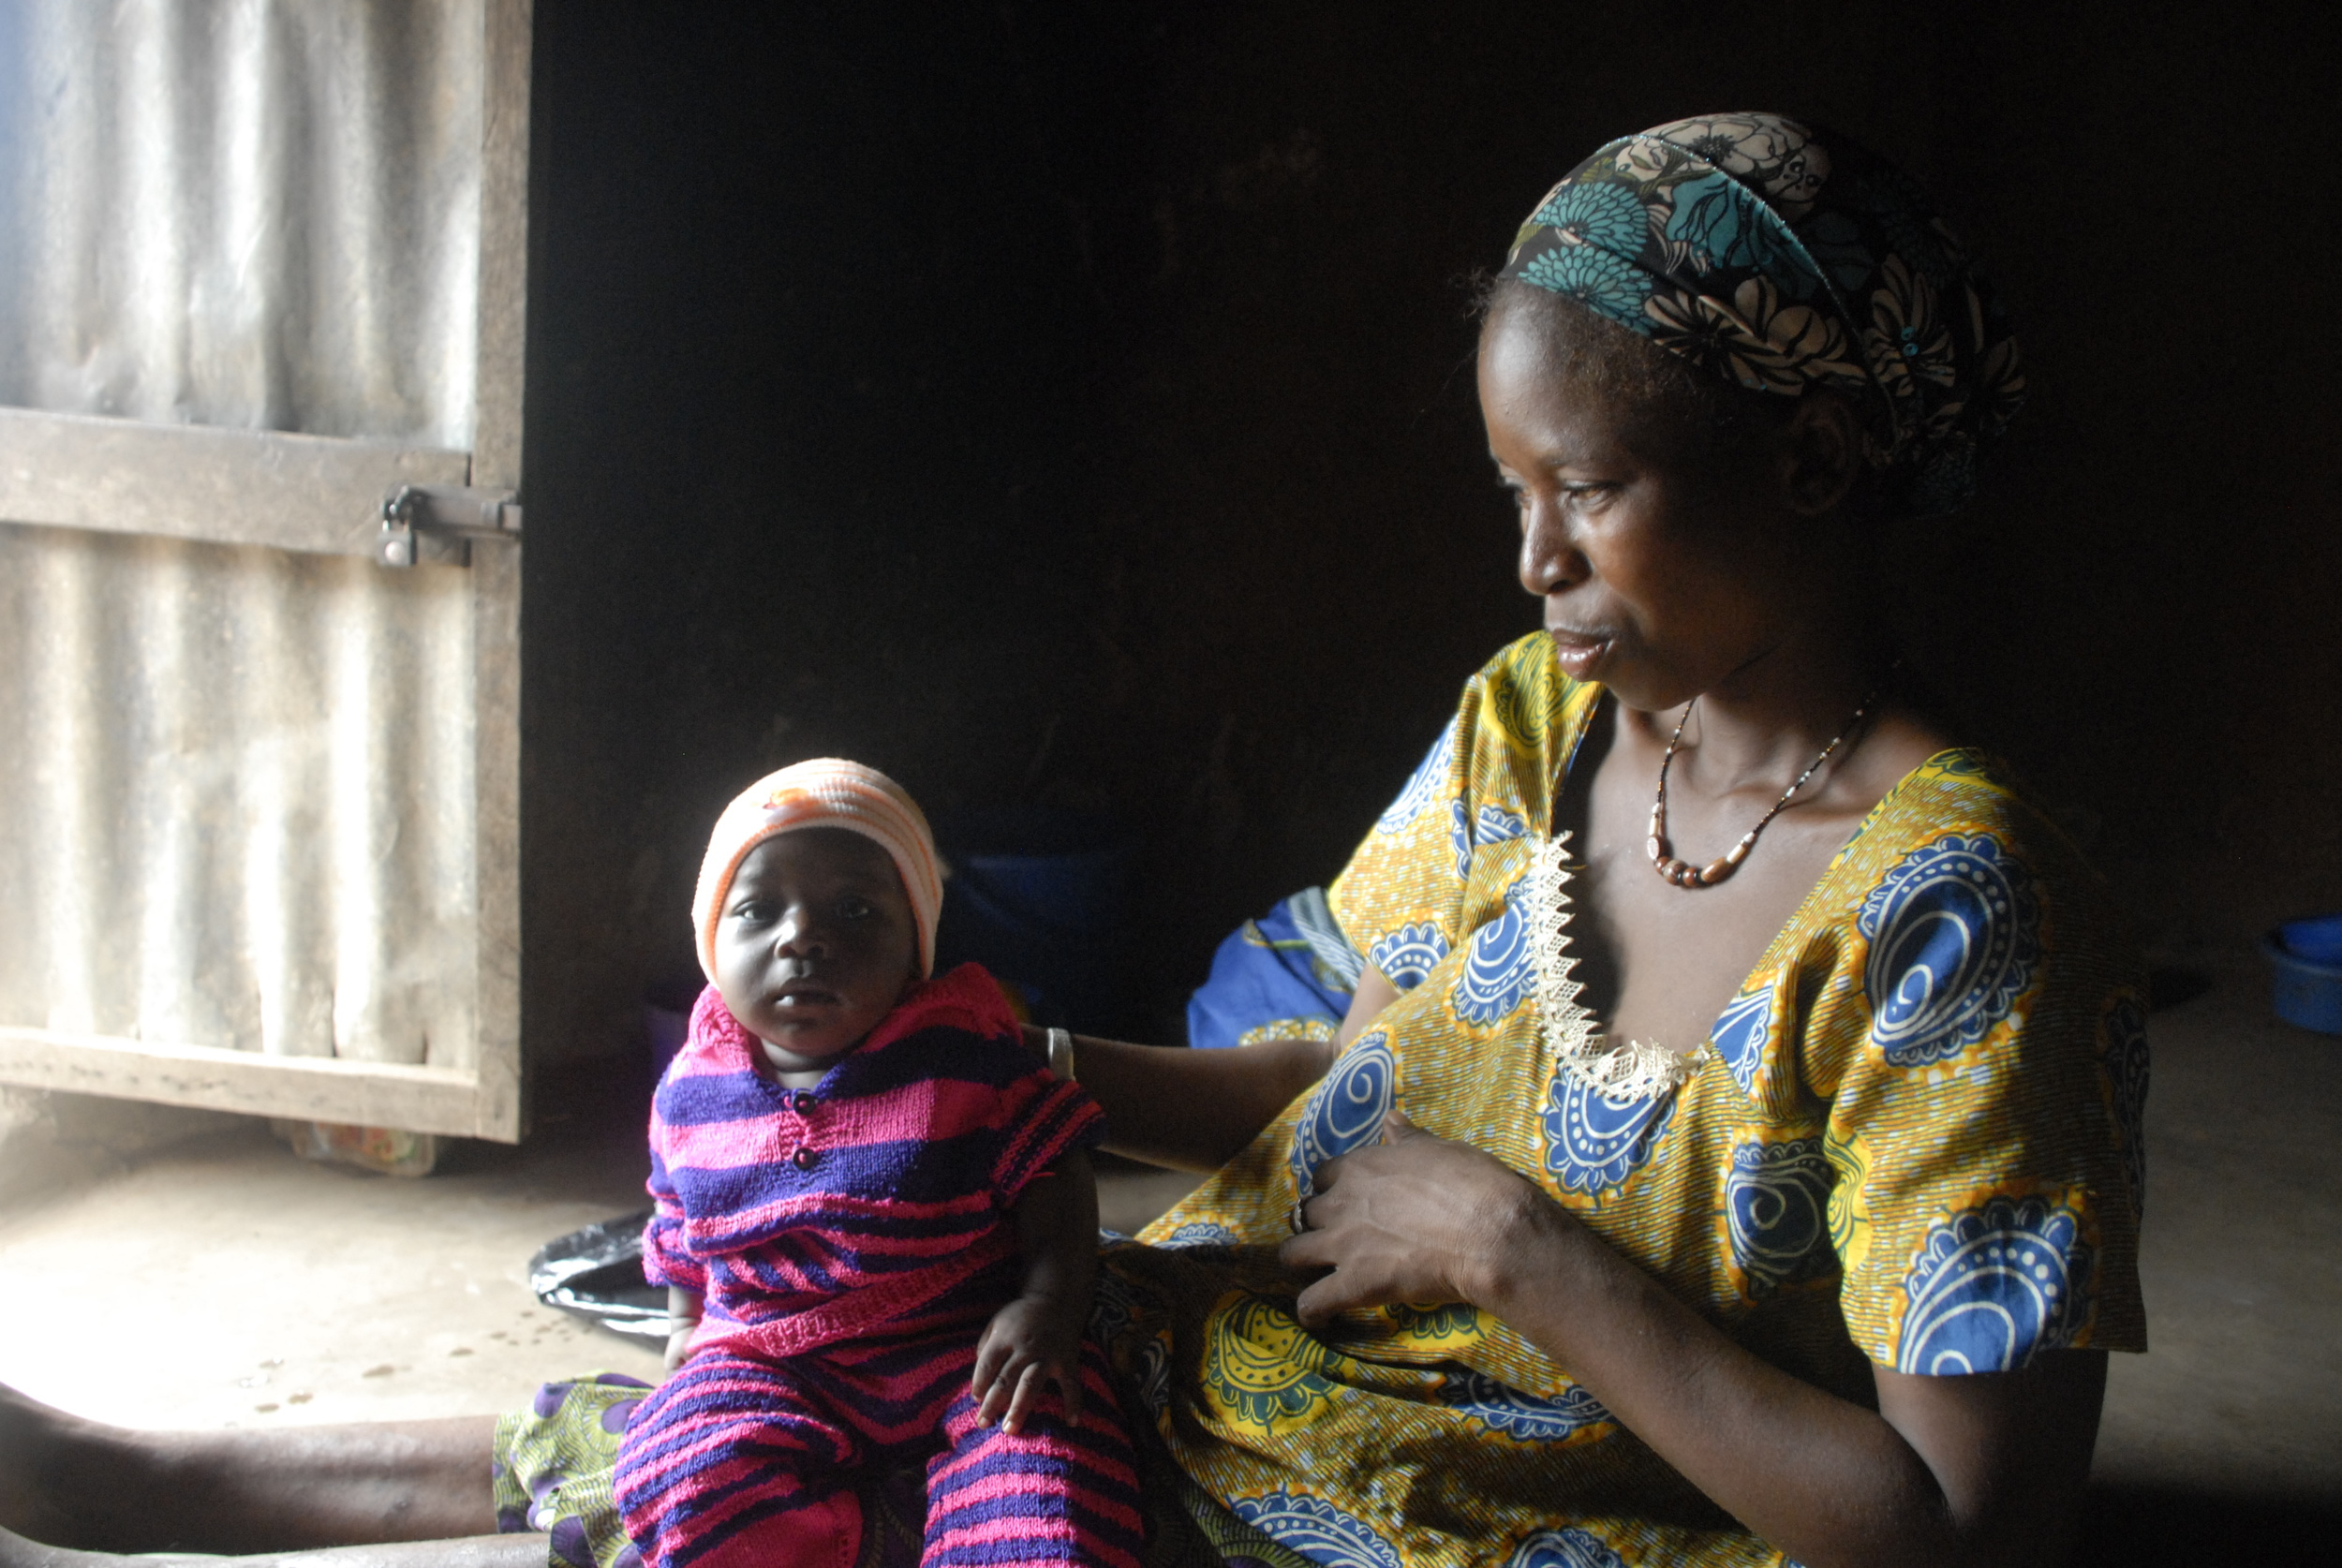 Maimouna shows off her two-month-old son's new hat in her home in northern Togo.